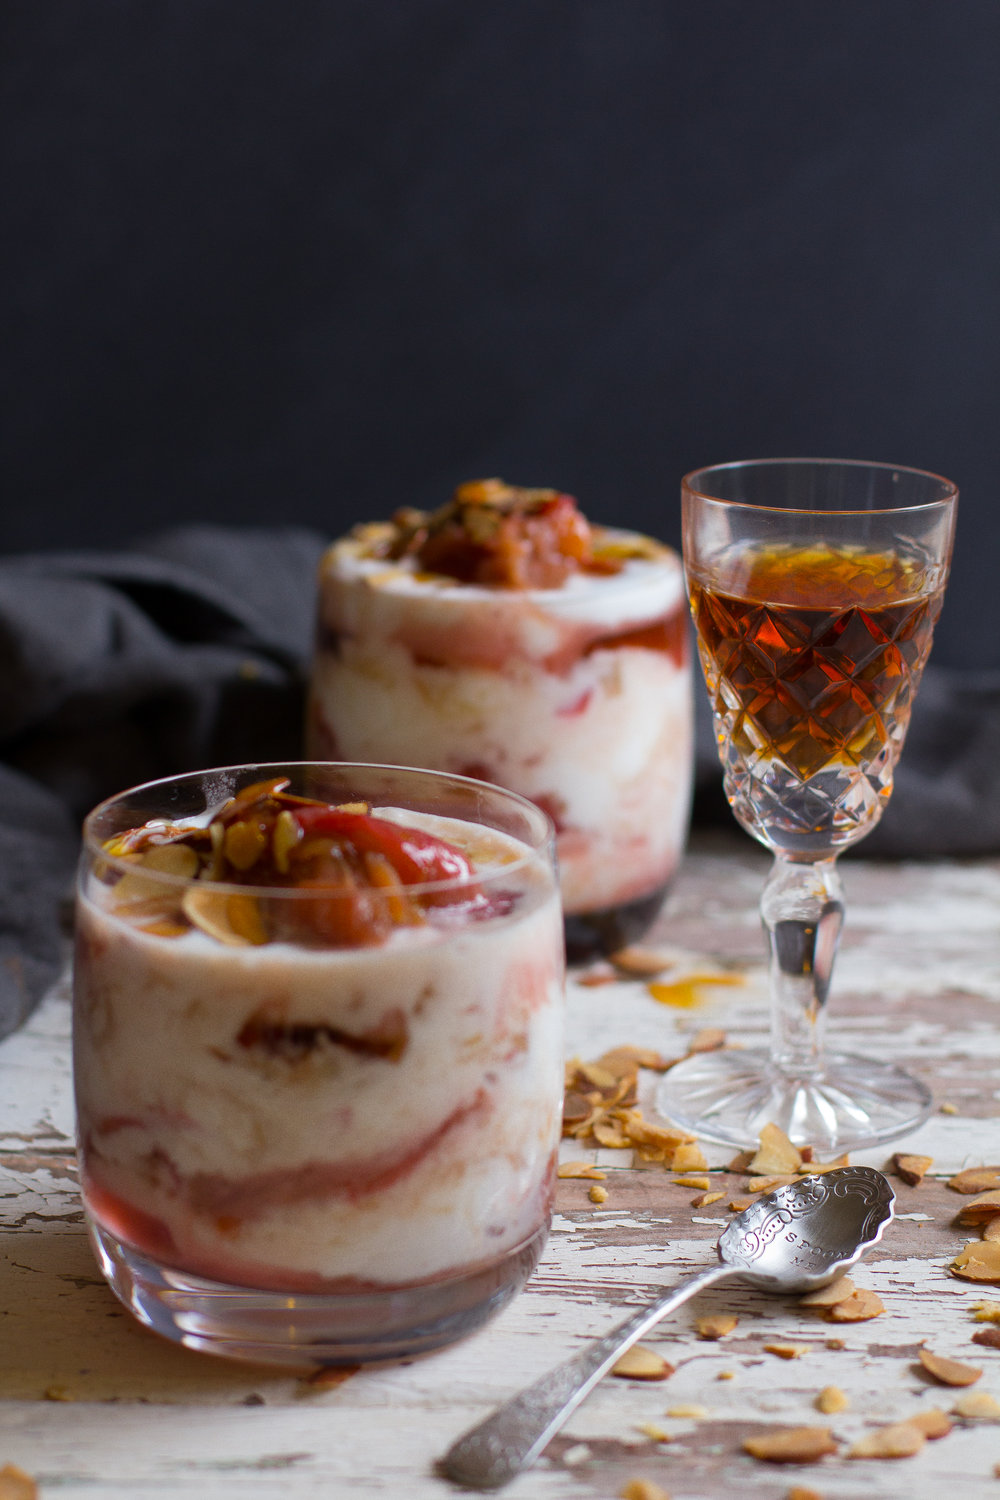 Roasted rhubarb, laced with amaretto, and folded through coconut yogurt. A delicious spring dessert.